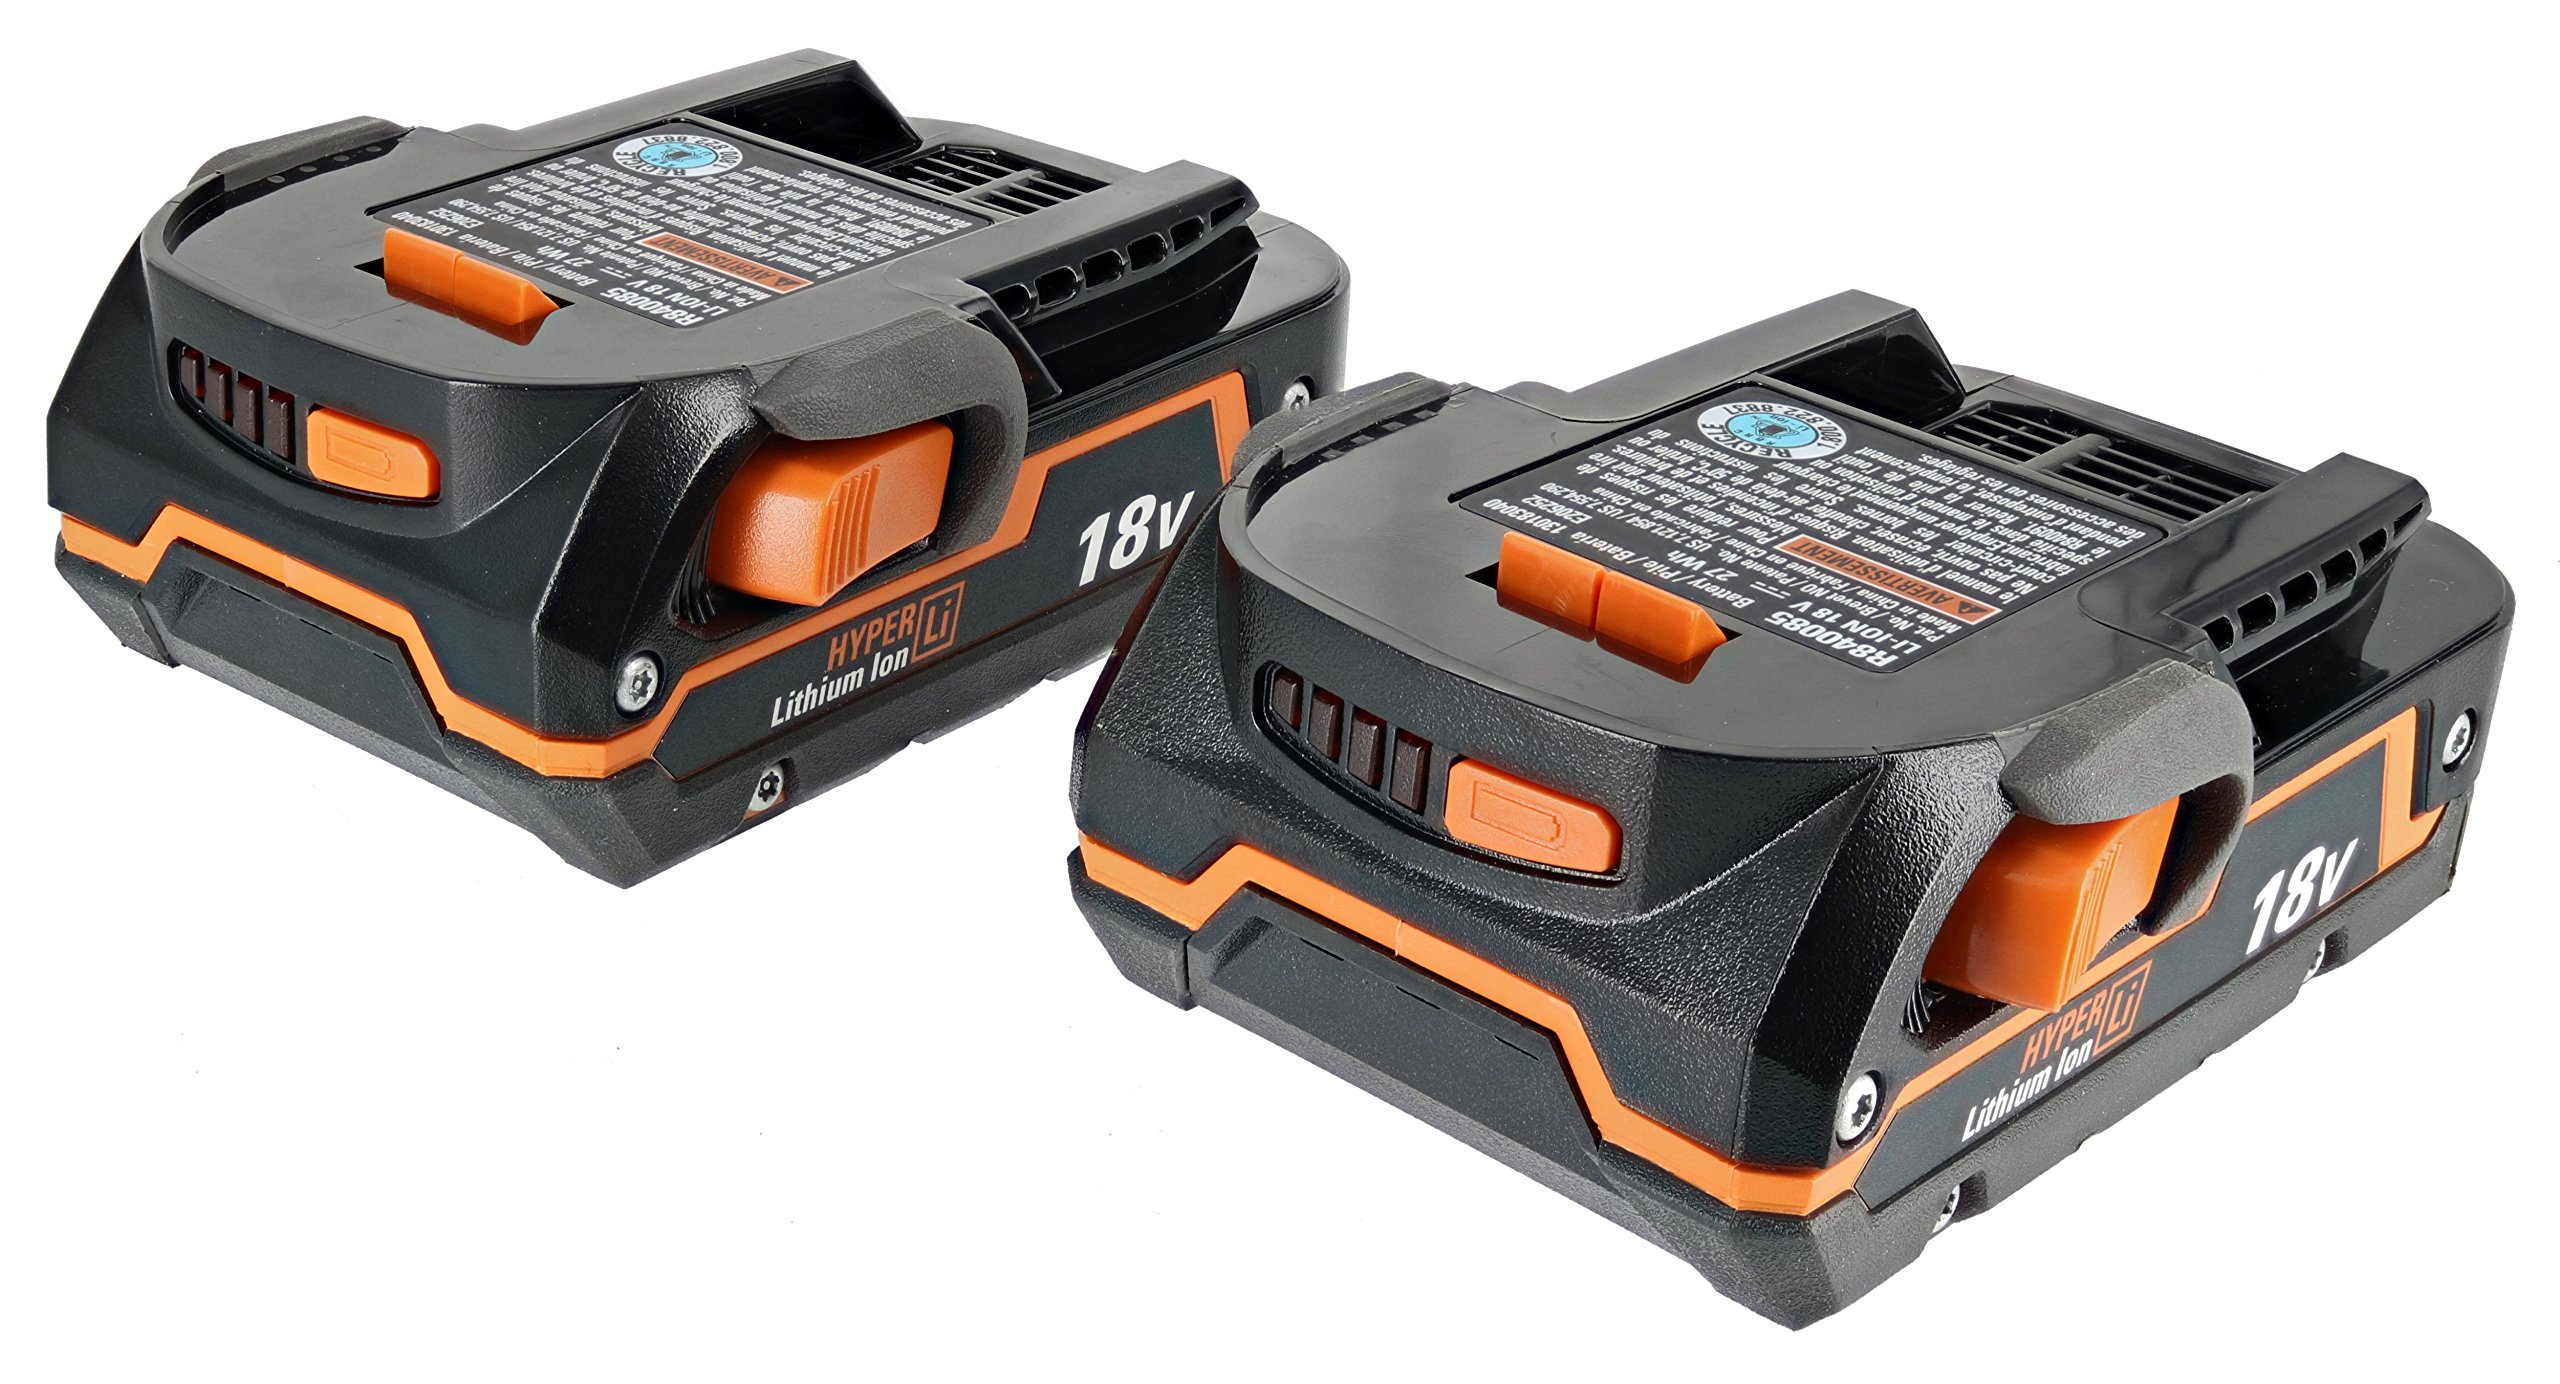 Ridgid X4 R9602 18V Lithium Ion Cordless Drill and Impact Driver Combo Kit with Soft-Sided Tool Case (2 Tools, 2 Compact Batteries, Charger, and Bag Included) by Rigid (Image #4)